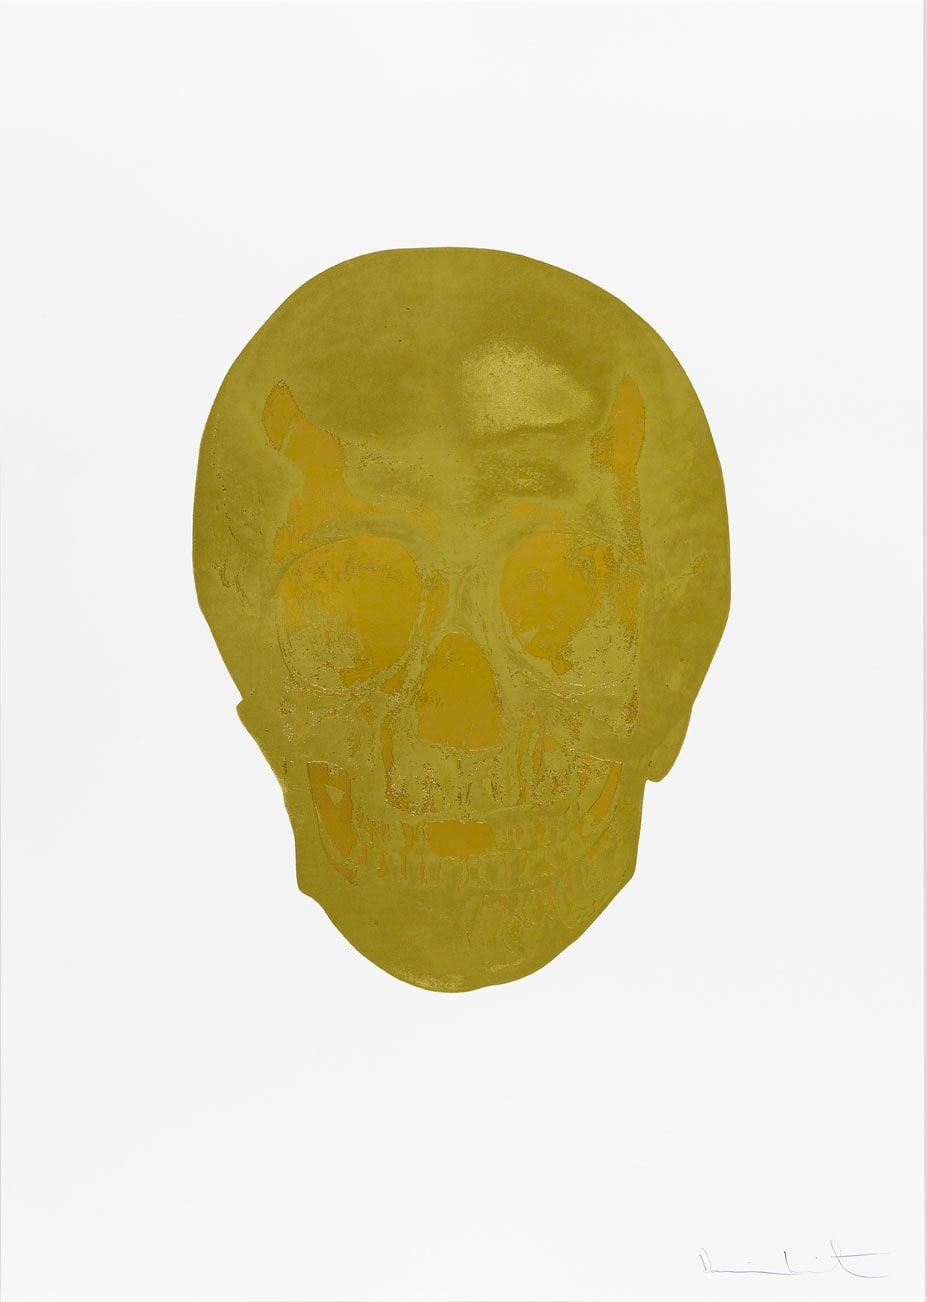 Damien Hirst Death Or Glory Hazy Gold/European Gold Glorious Skull, 2011 2 colour foil block on 300gsm Arches 88 archival paper. Signed and numbered. Published by Paul Stolper and Other Criteria. White aluminium powder coated frame. 72 x 51 cm; Framed 76.8 x 55.8 cm OC8363 Edition of 2